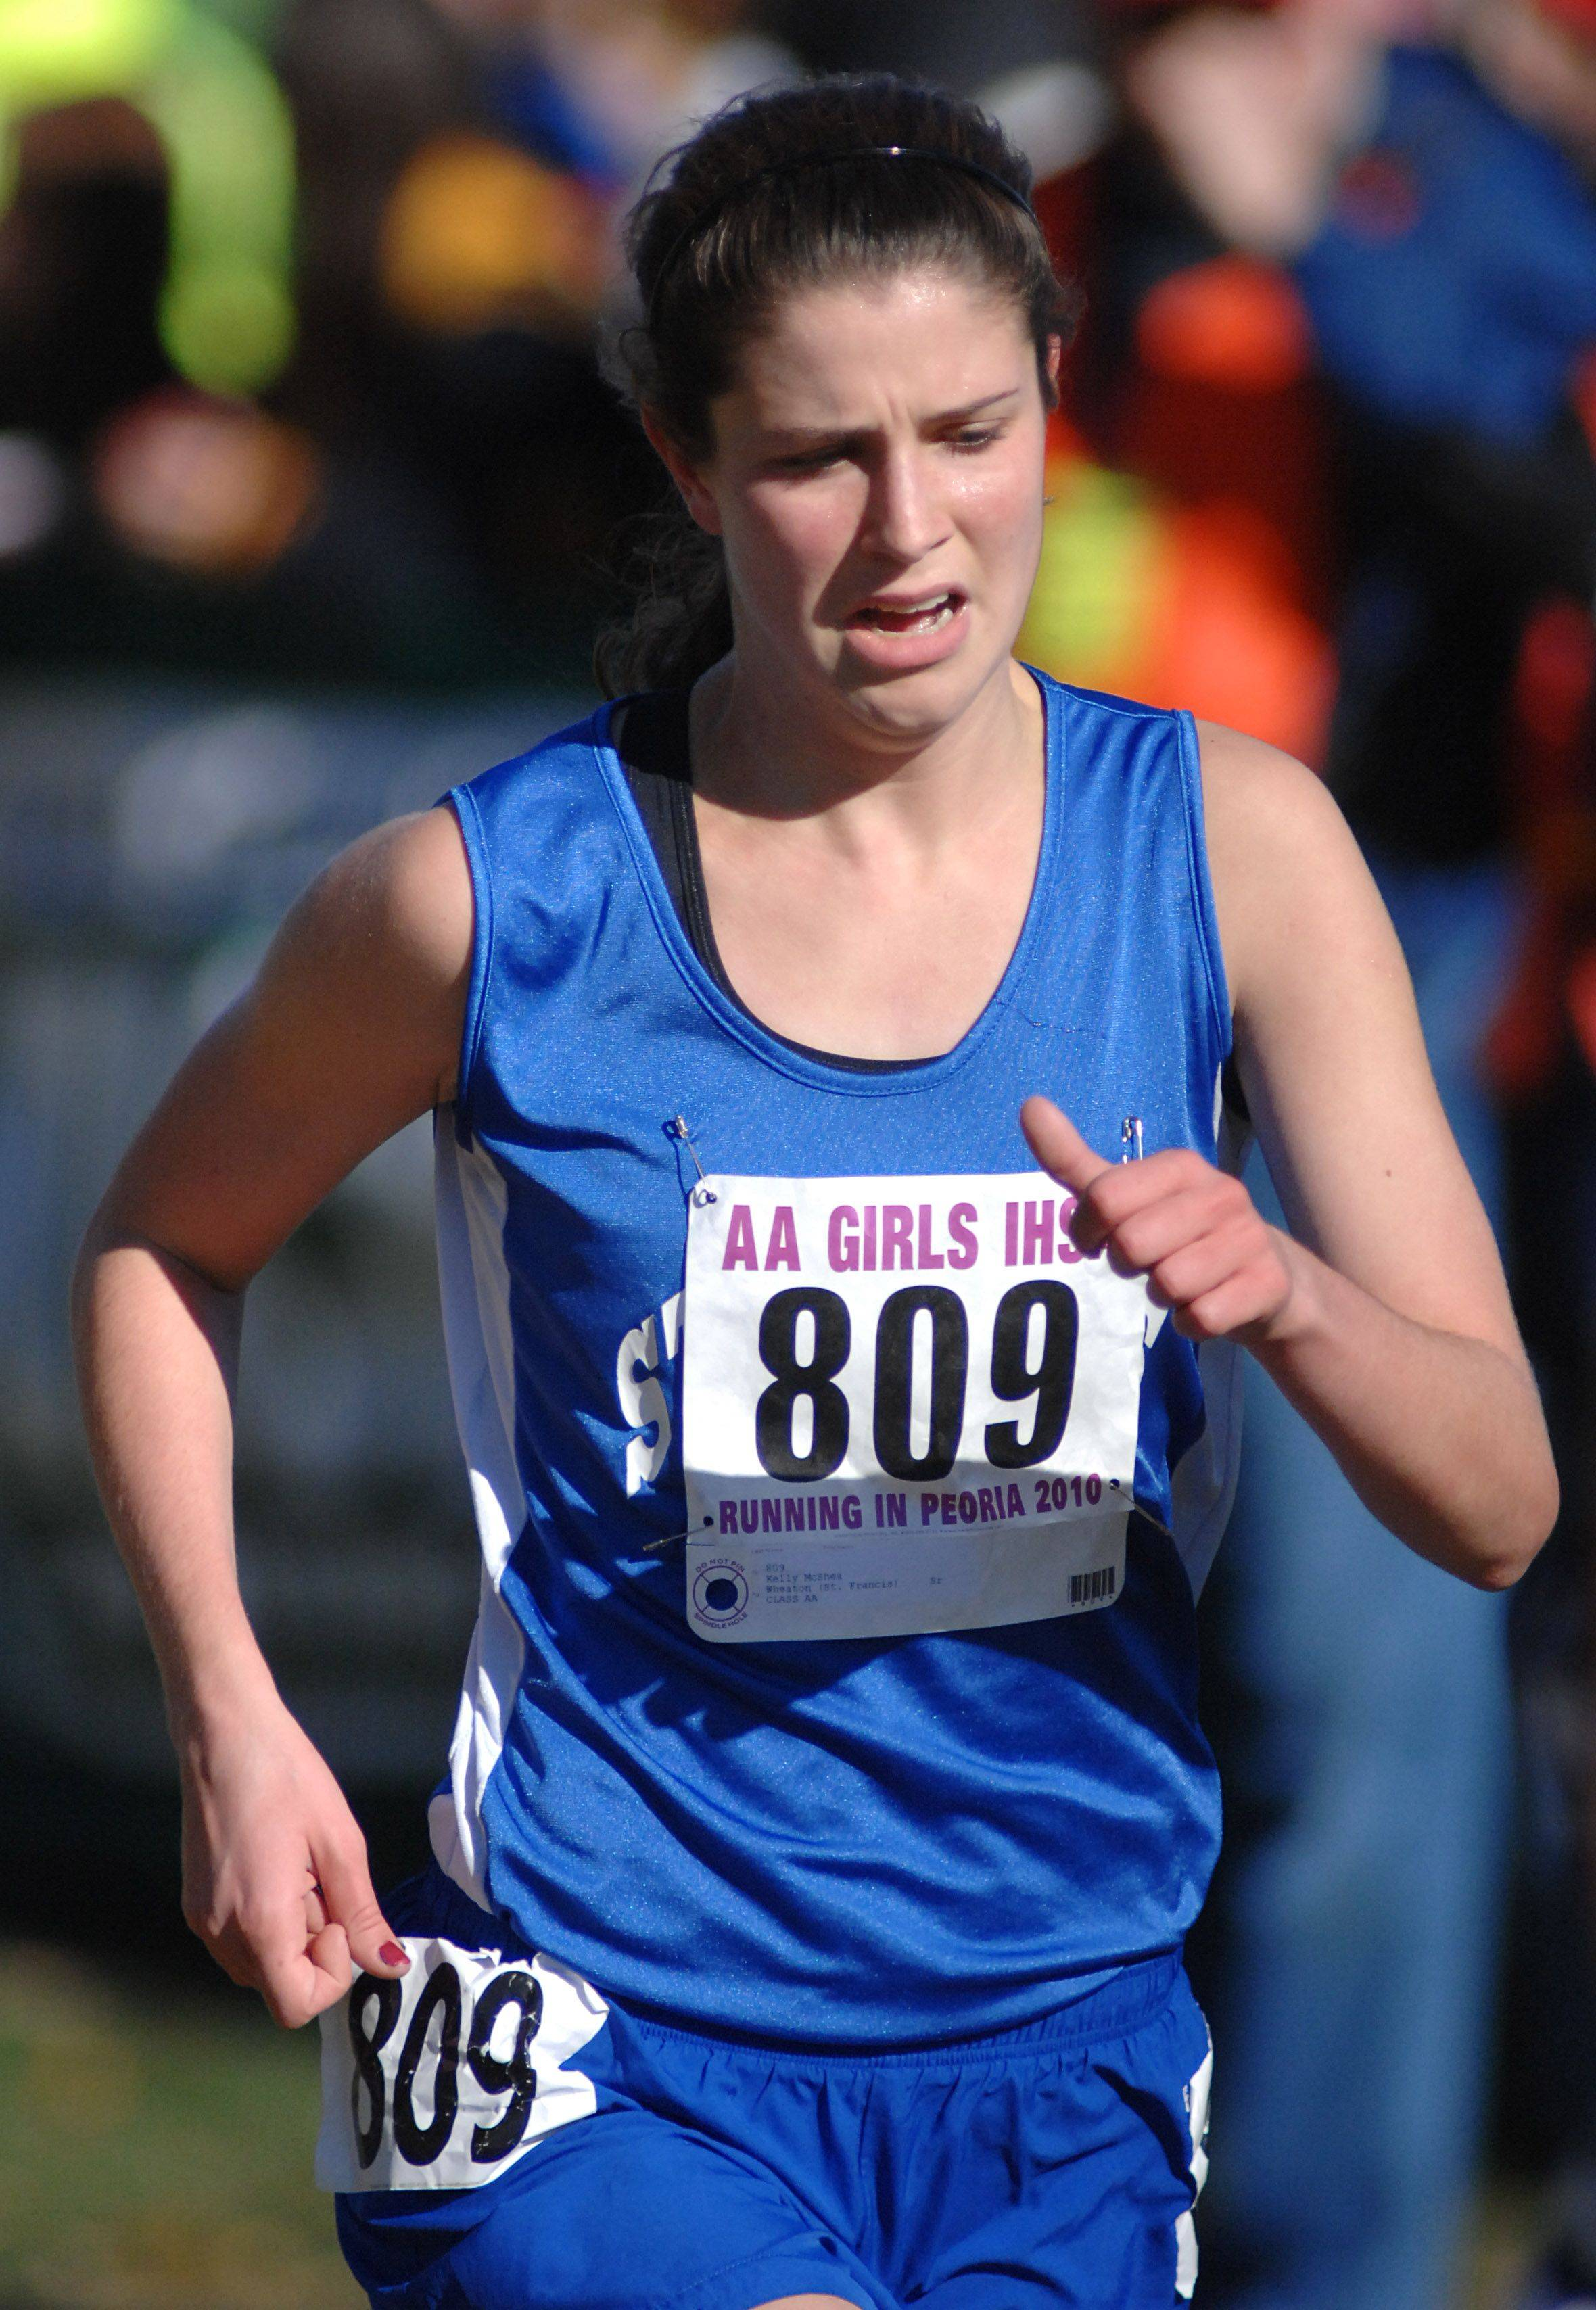 Wheaton St. Francis' Kelly McShea nears the finish line of the 2A class of the state cross country meet at Detweiller Park in Peoria on Saturday, November 6.